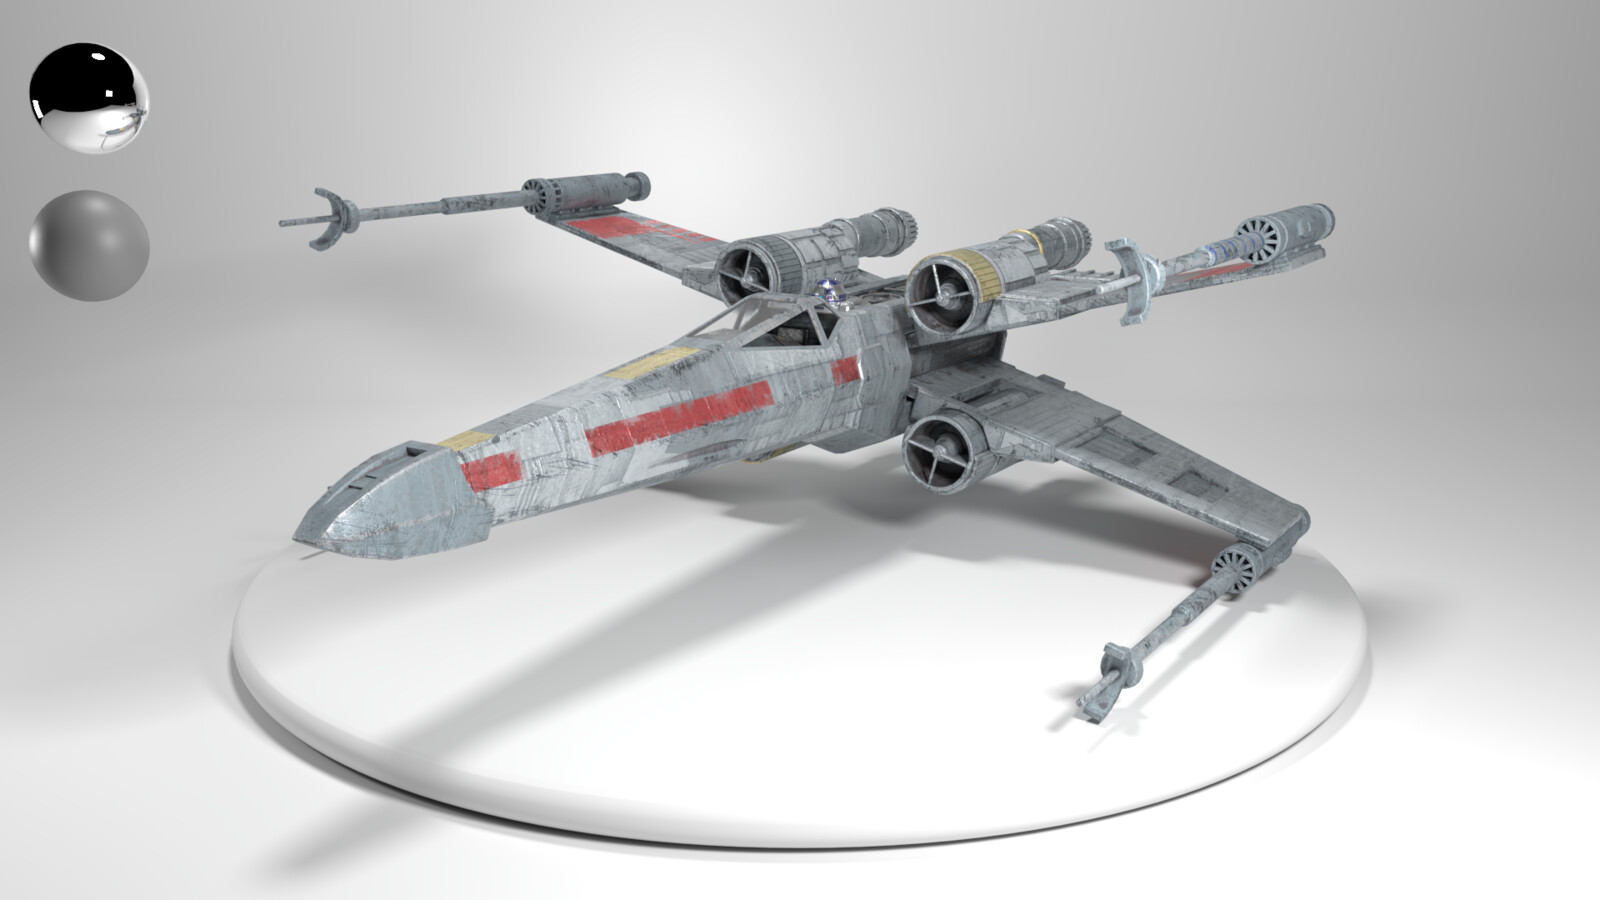 """The texture-work/paint-job is based on Luke Skywalker's X-Wing """"Red 5,"""" signified by the segmented red line, the gold paint trim, and the blue stripes along the blasters."""